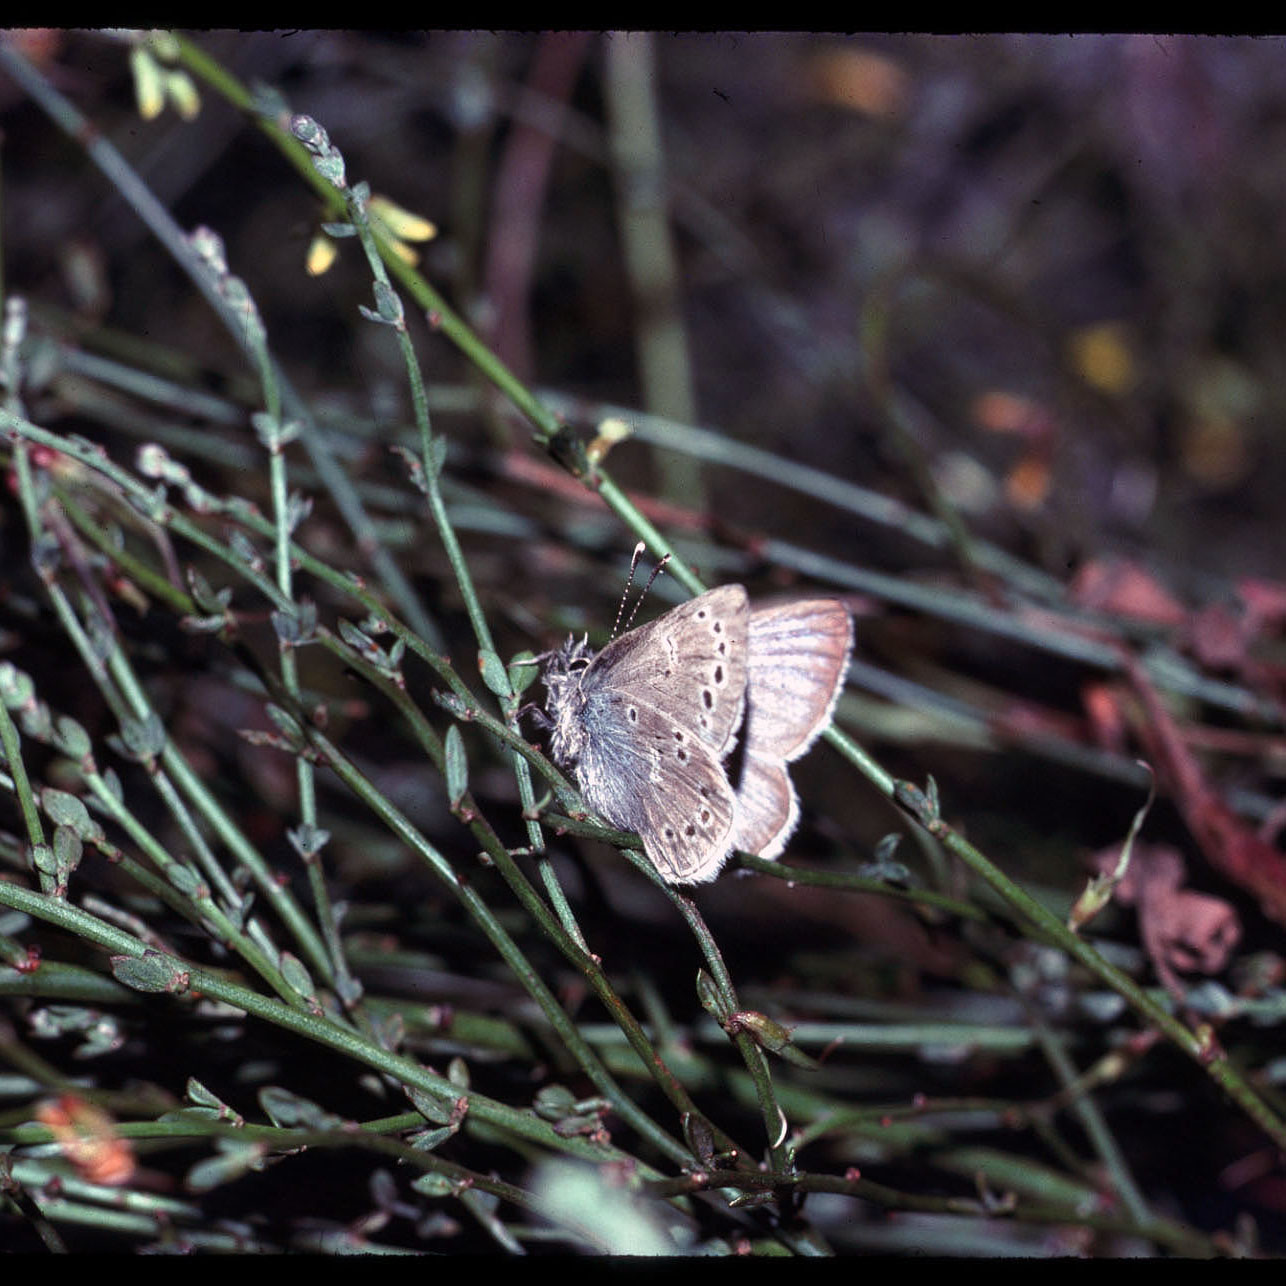 A stiff, preserved butterfly was placed on deerweed in this old, slightly distorted photo.